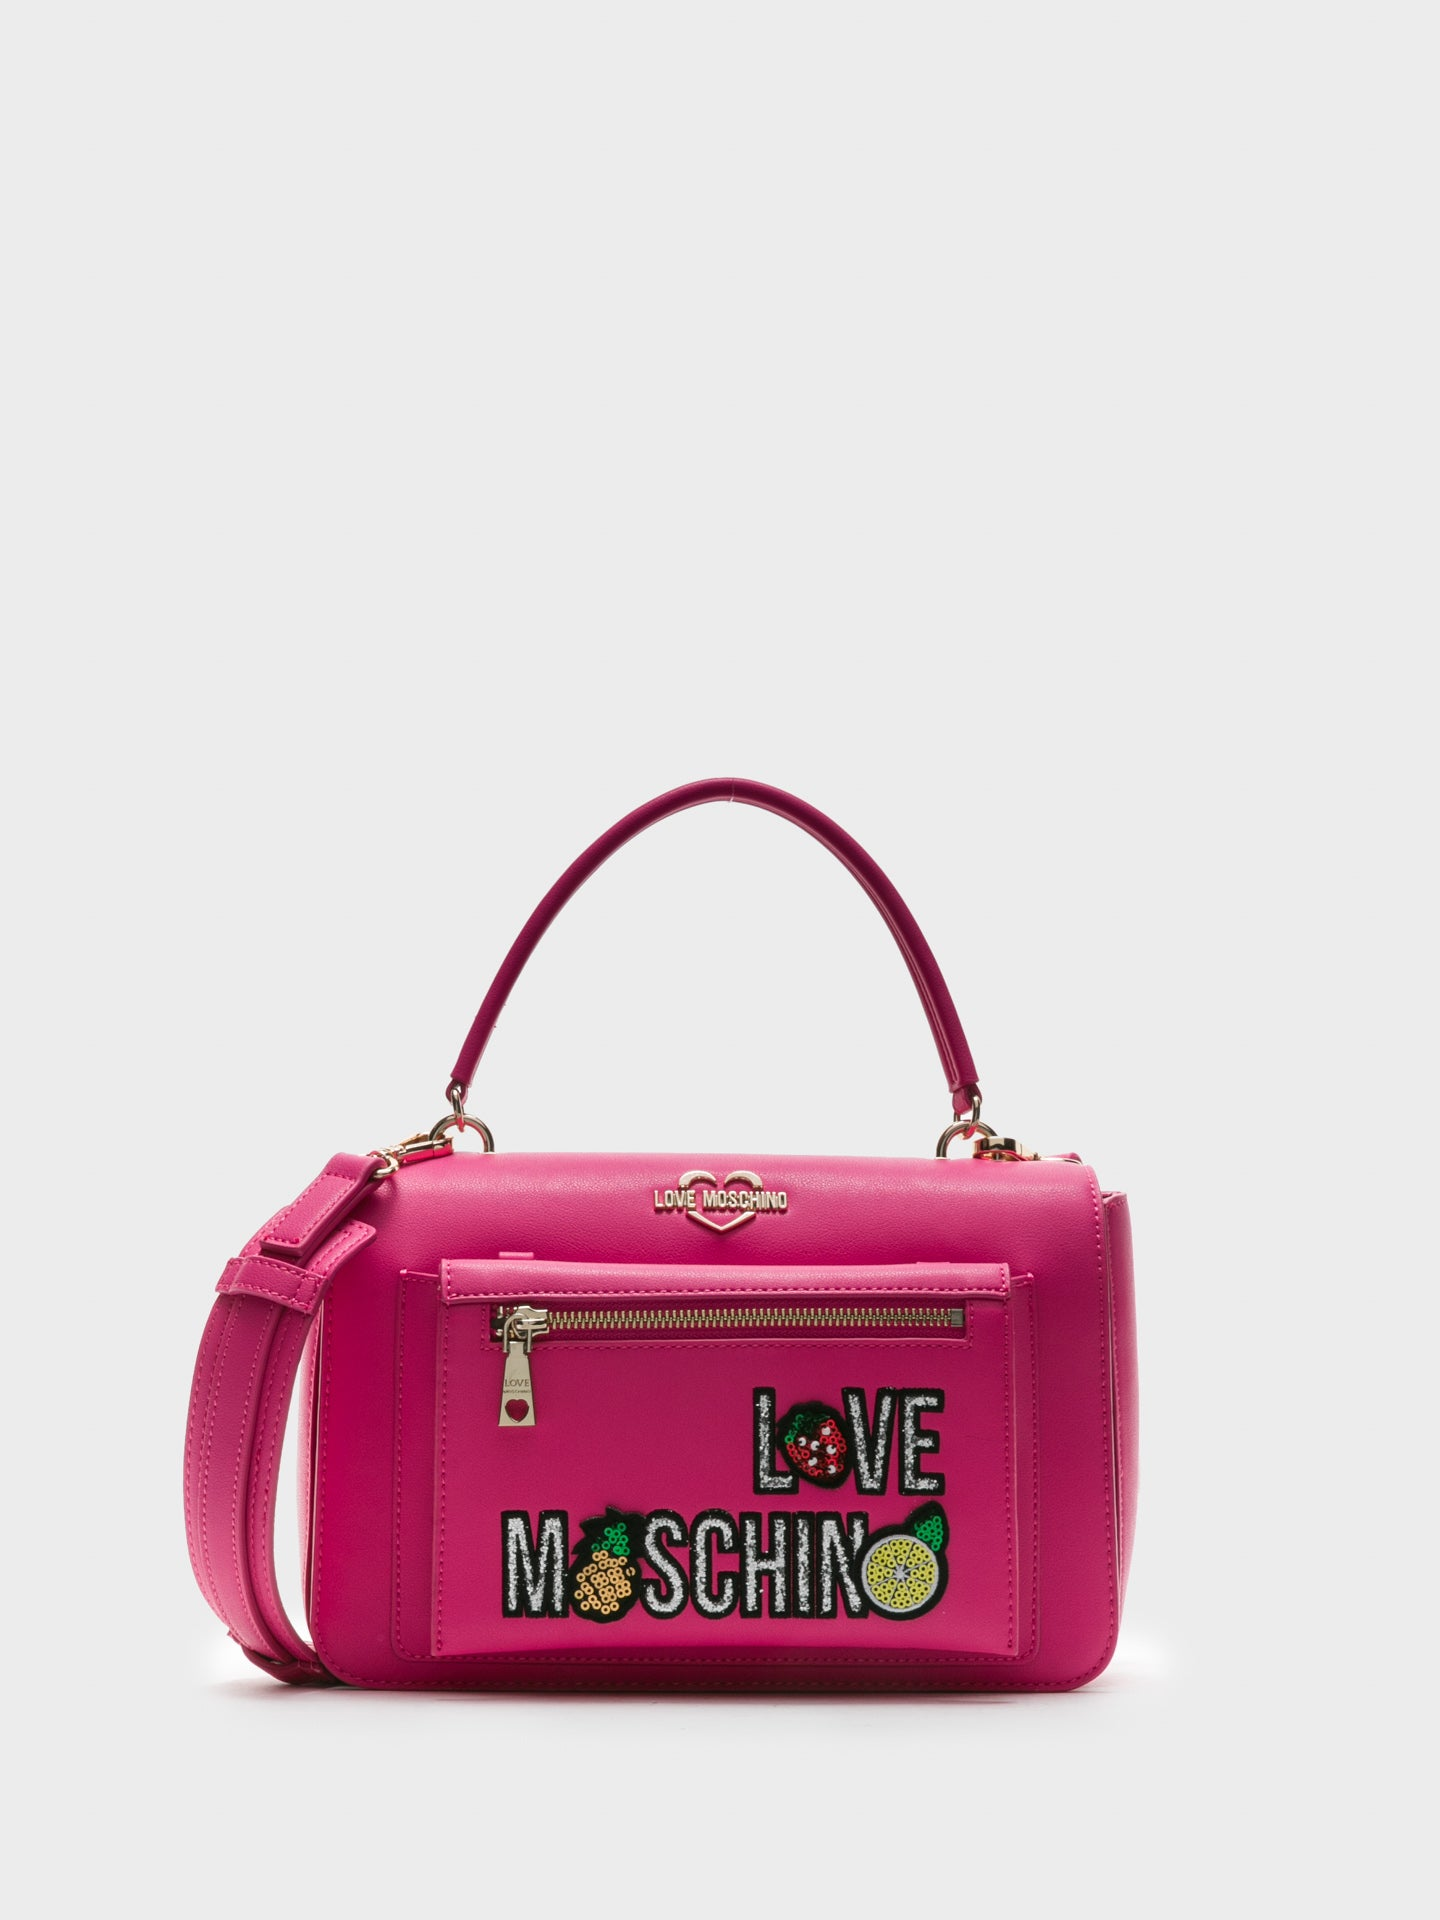 LOVE MOSCHINO Pink Handbag